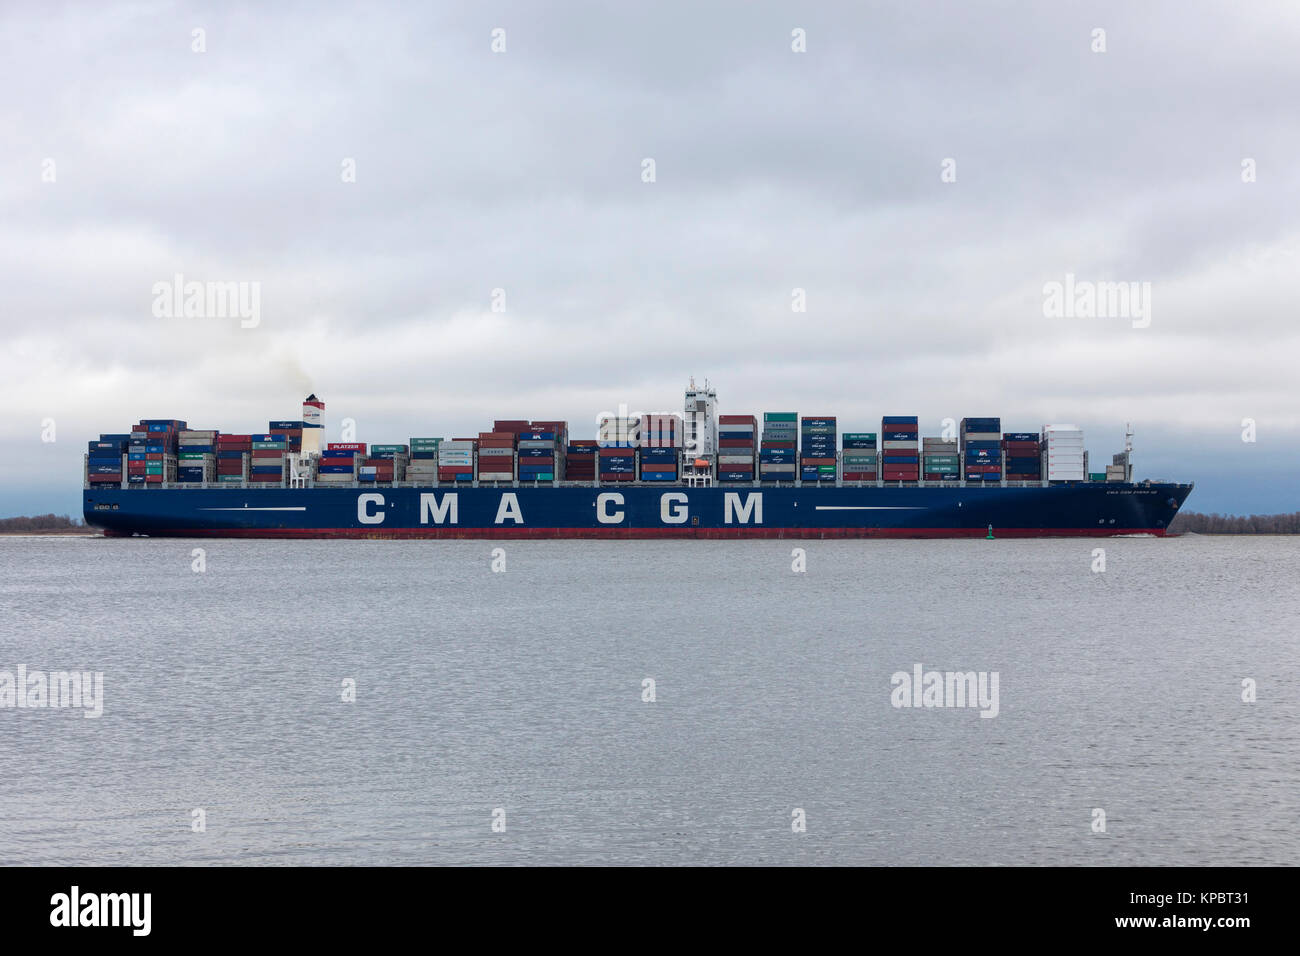 Hollern, Germany - December 14, 2017: Container ship CMA CGM ZHENG HE on Elbe river on her way to Hamburg. - Stock Image